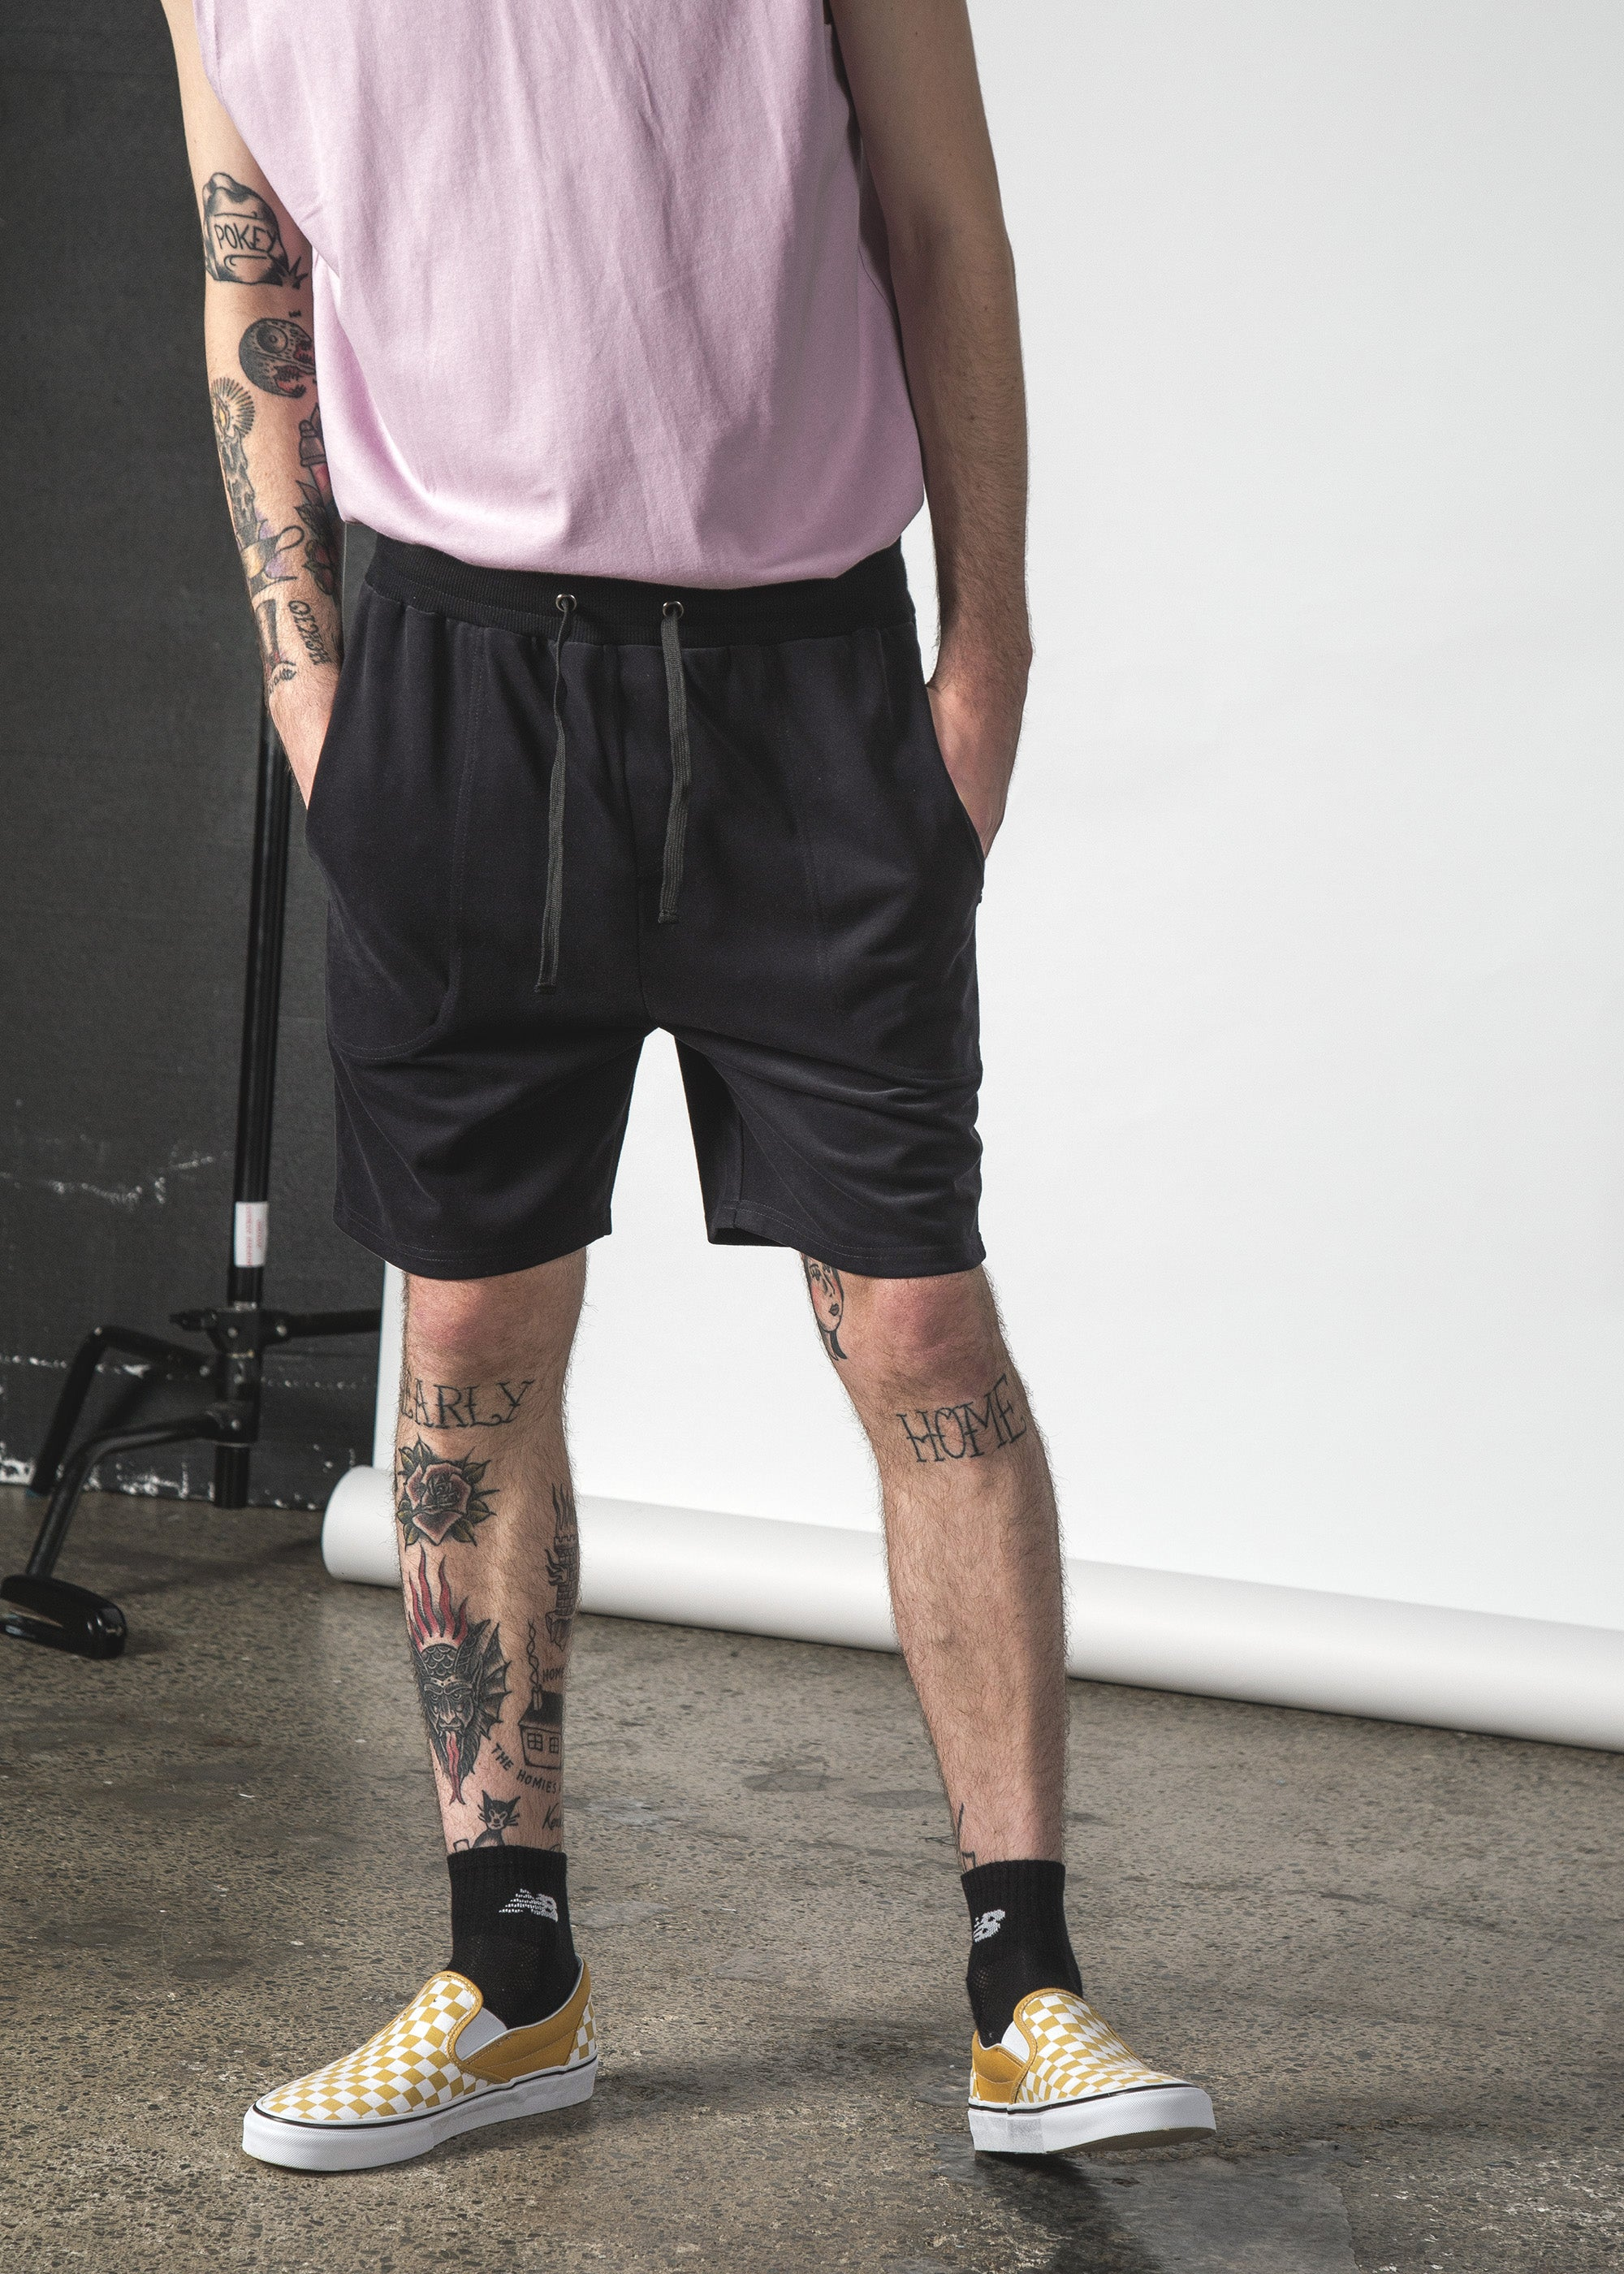 RONIN JERSERY SHORT BLACK